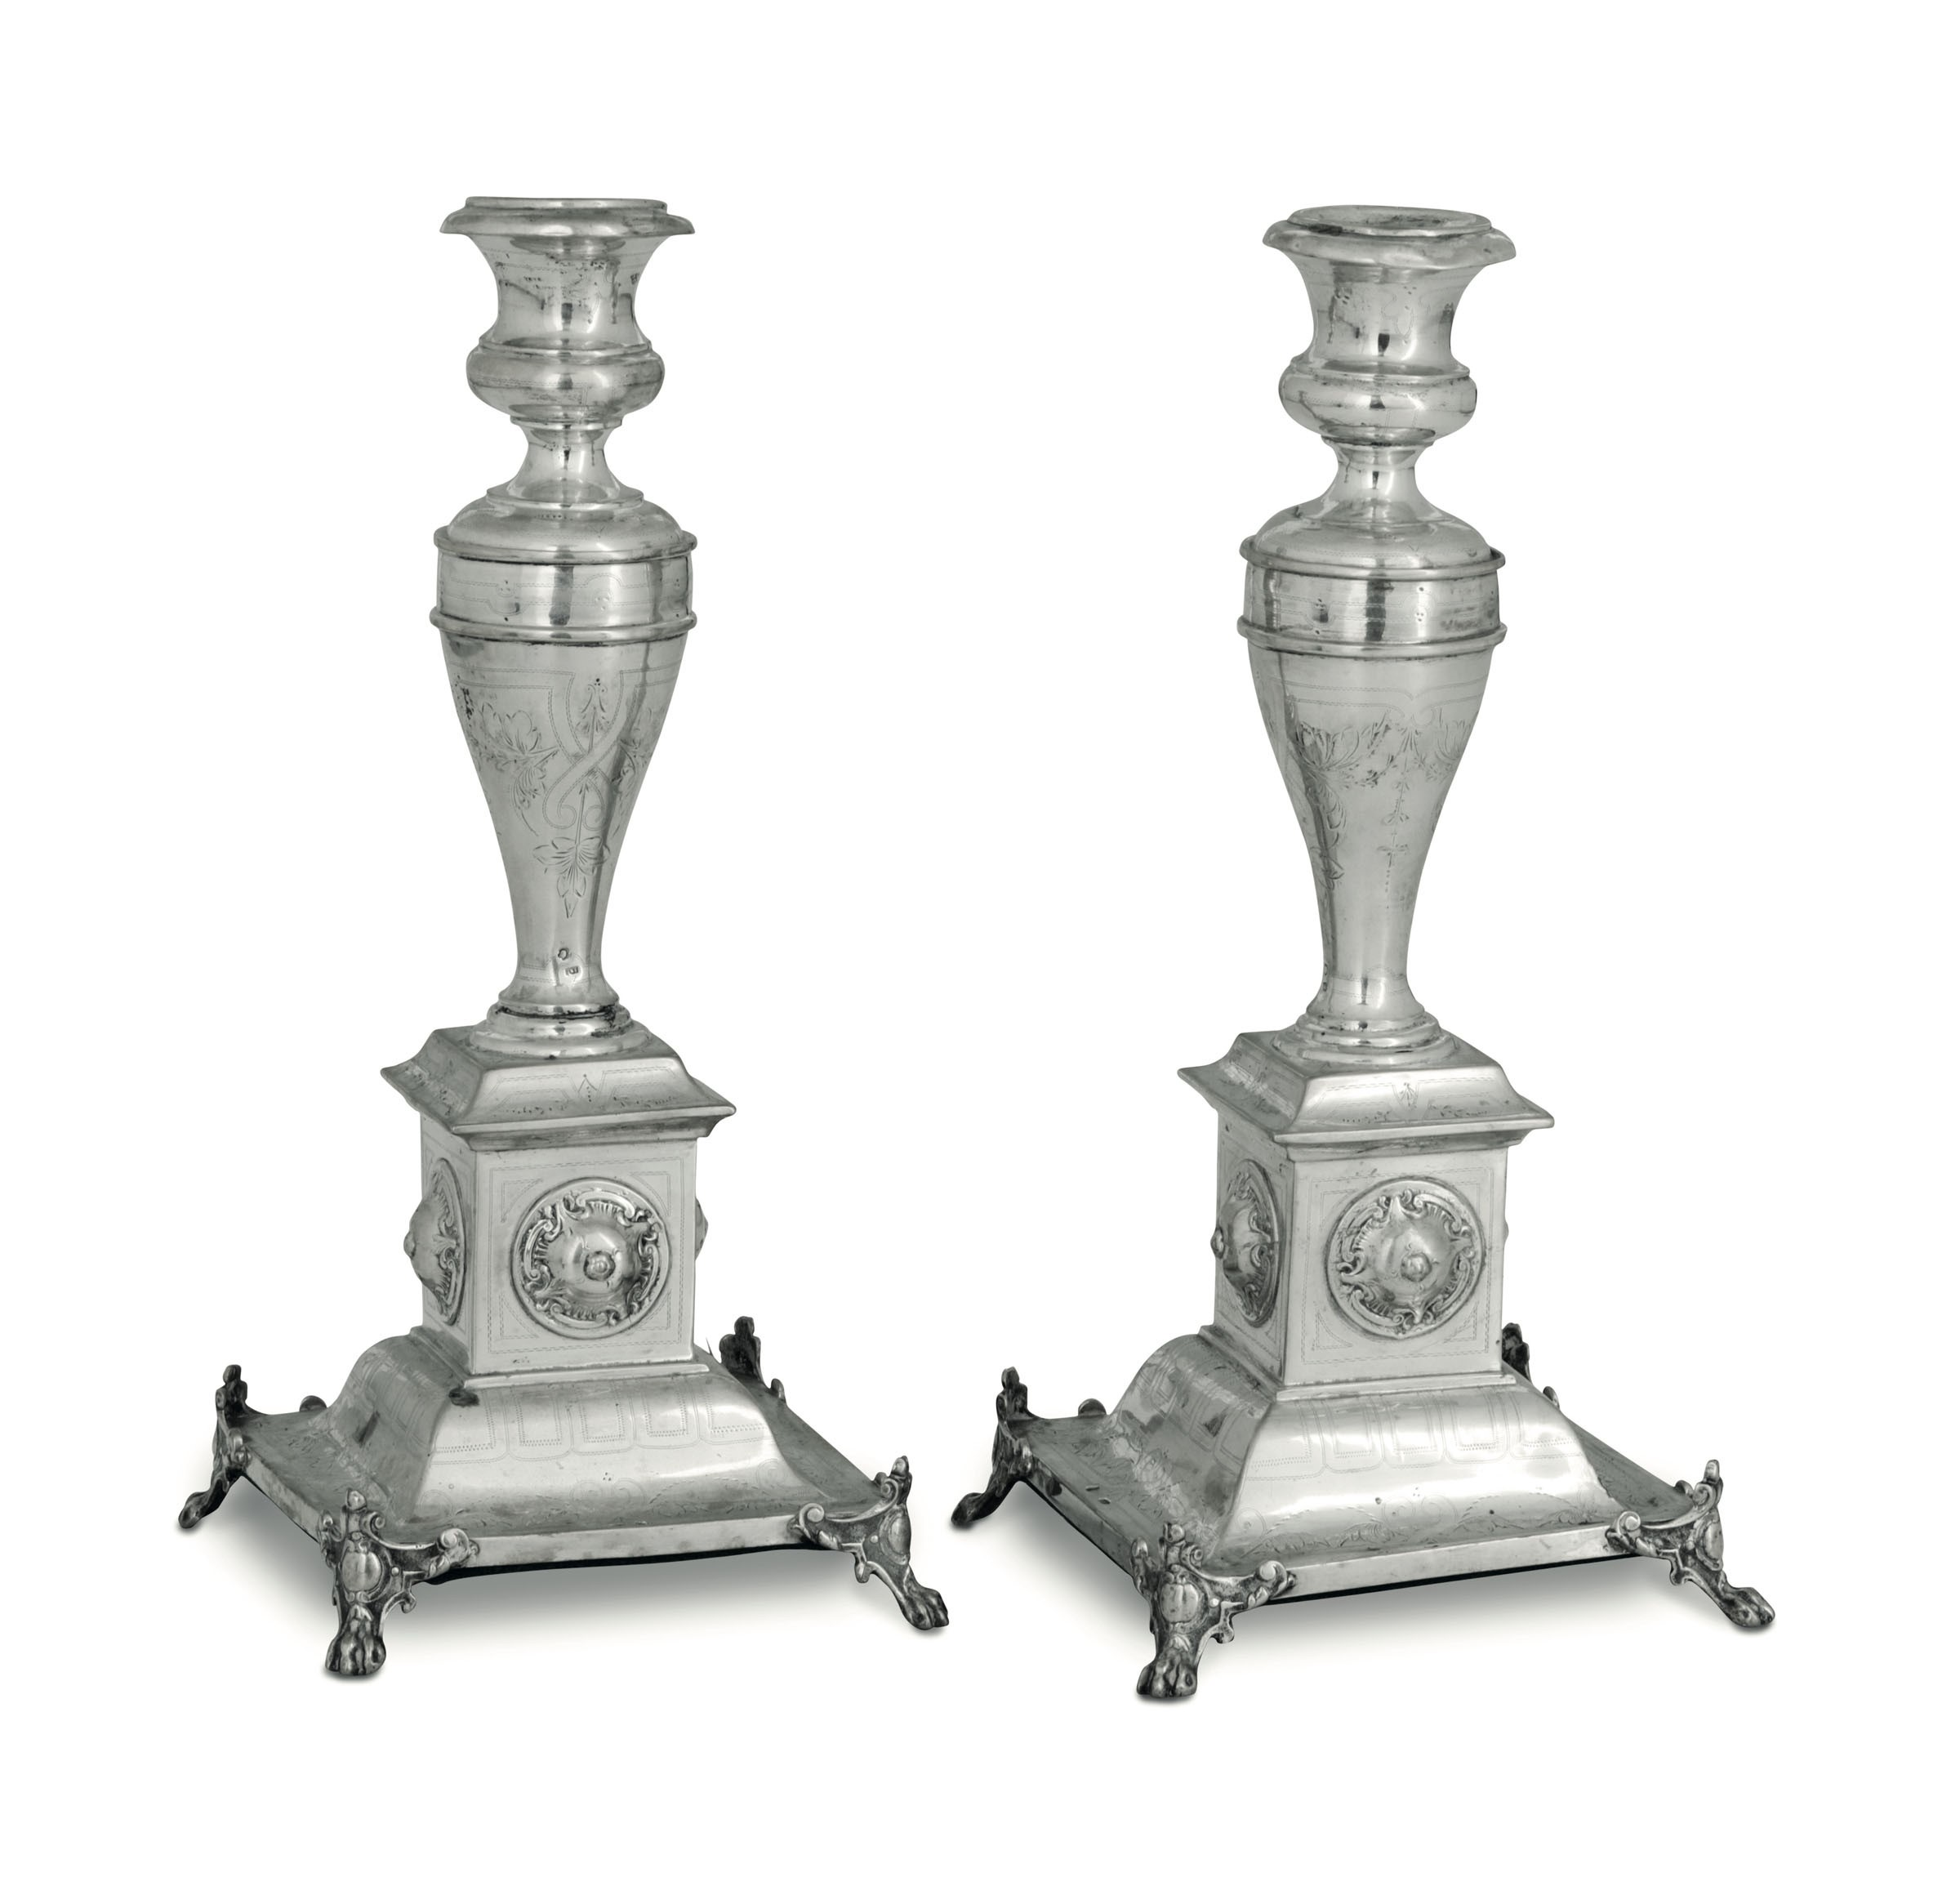 Lot 53 - A pair of candlesticks in molten, embossed and chiselled silver. Austro-Hungarian [...]